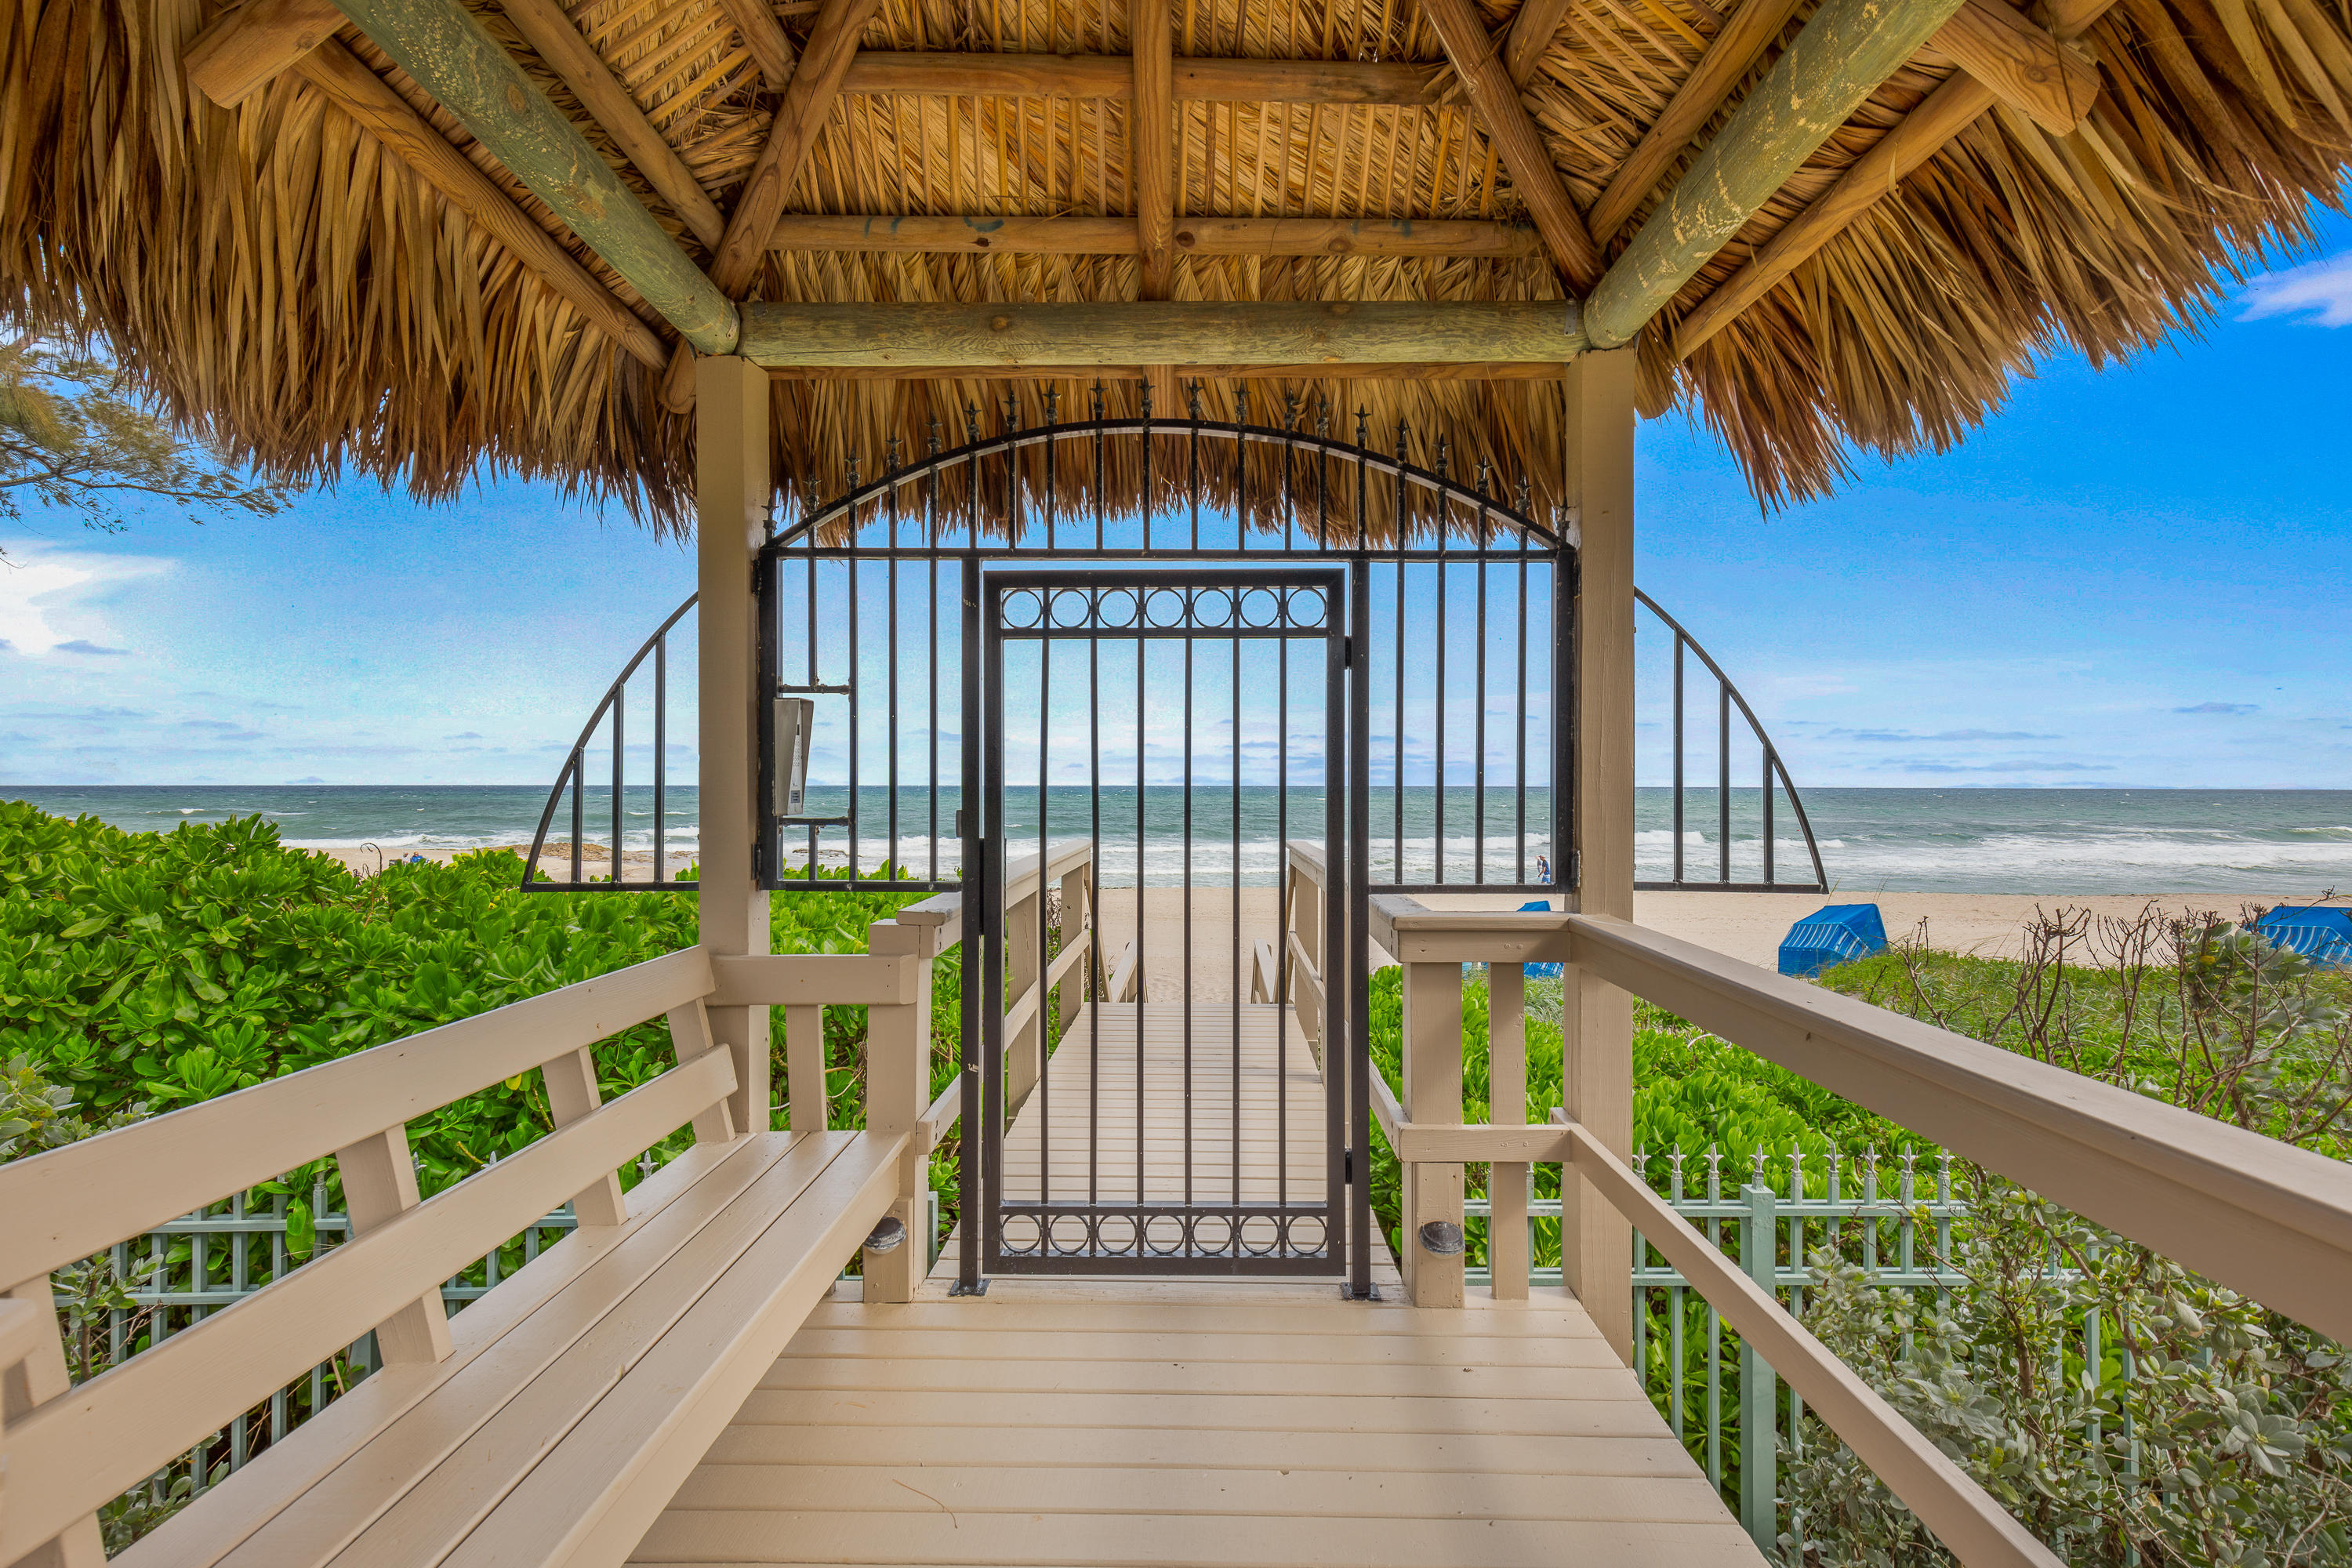 New Home for sale at 3920 Ocean Drive in Singer Island